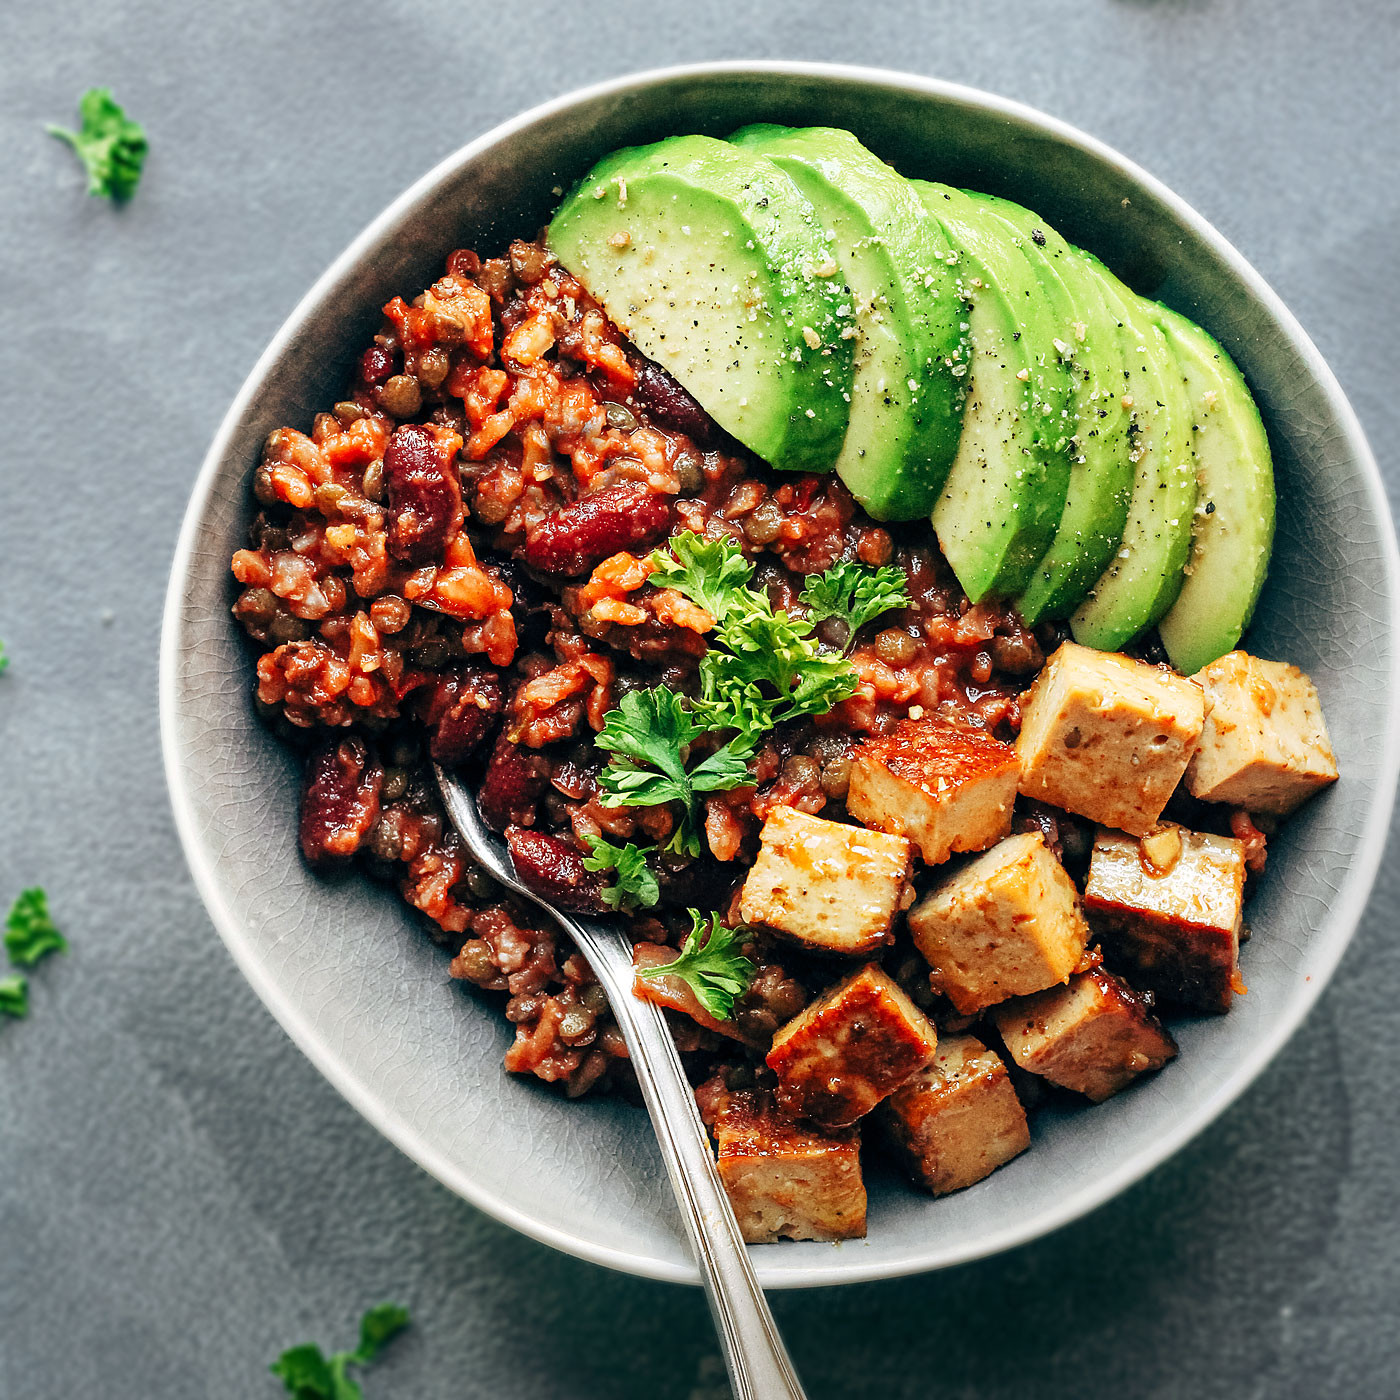 Vegan Protein Bowl Recipes  Enchilada Power Bowls with Spicy Tofu Full of Plants